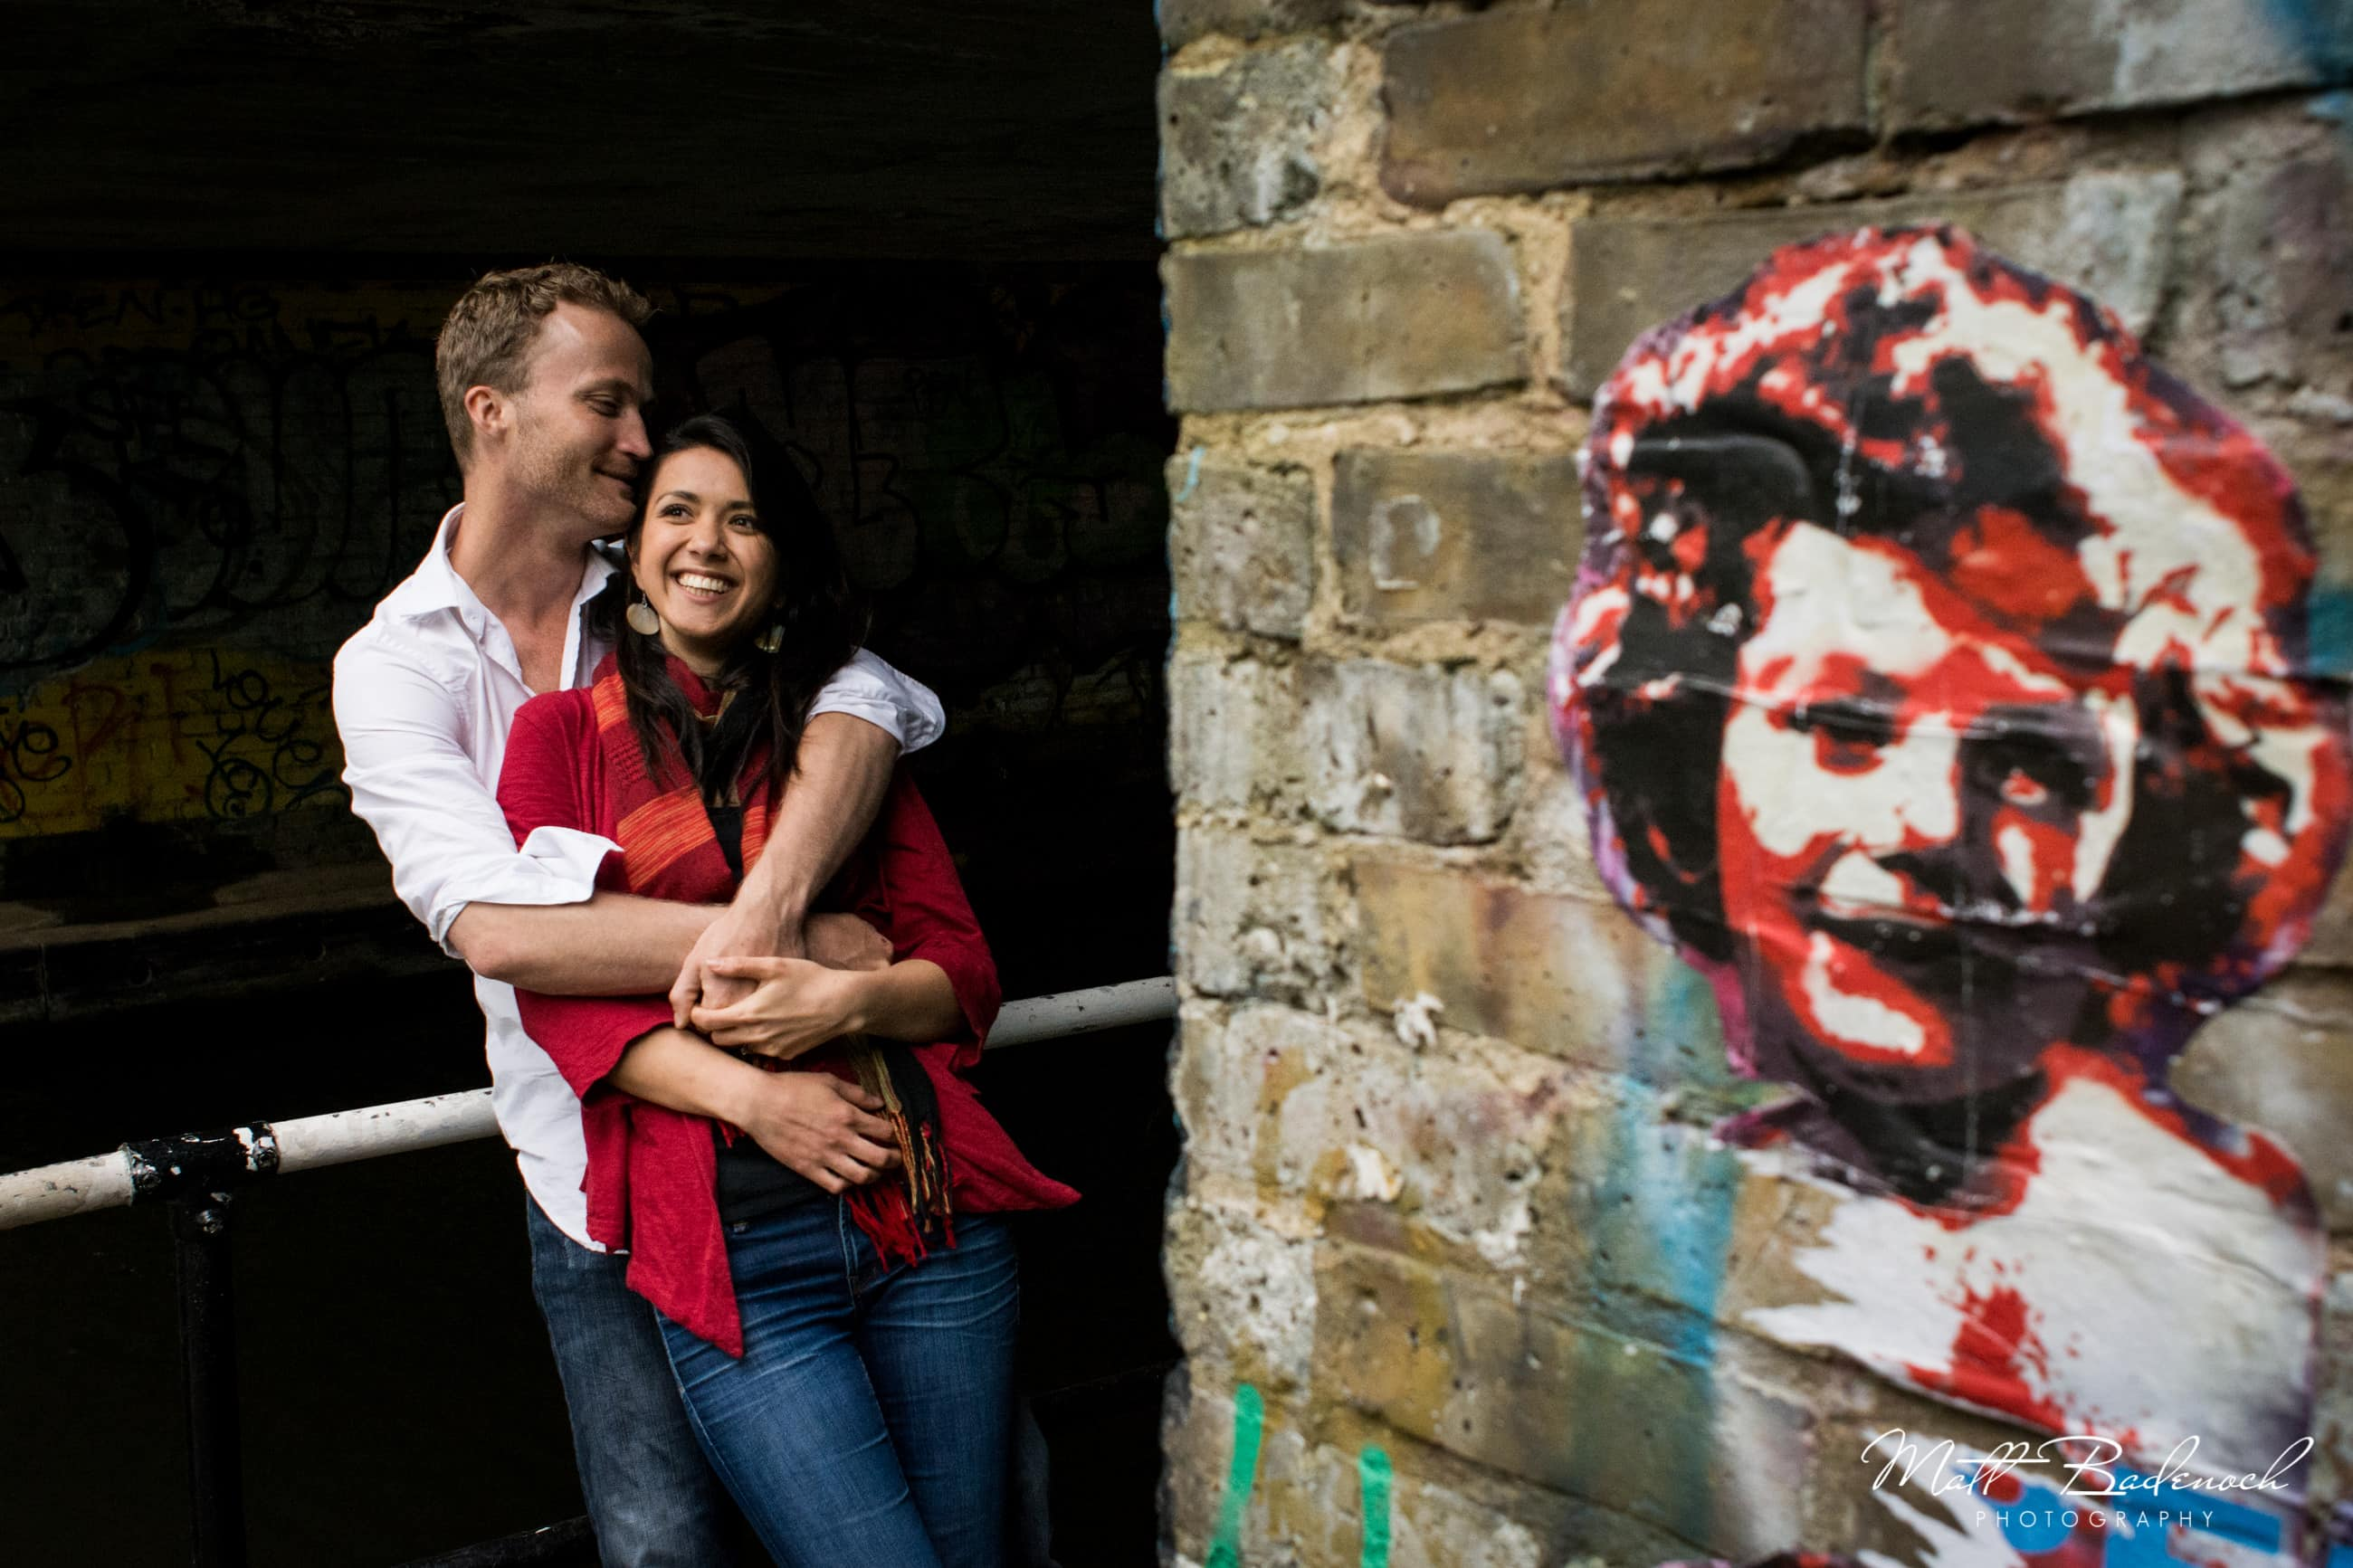 Fun london engagement shoot with Naomi Johns , Matt Badenoch Photography